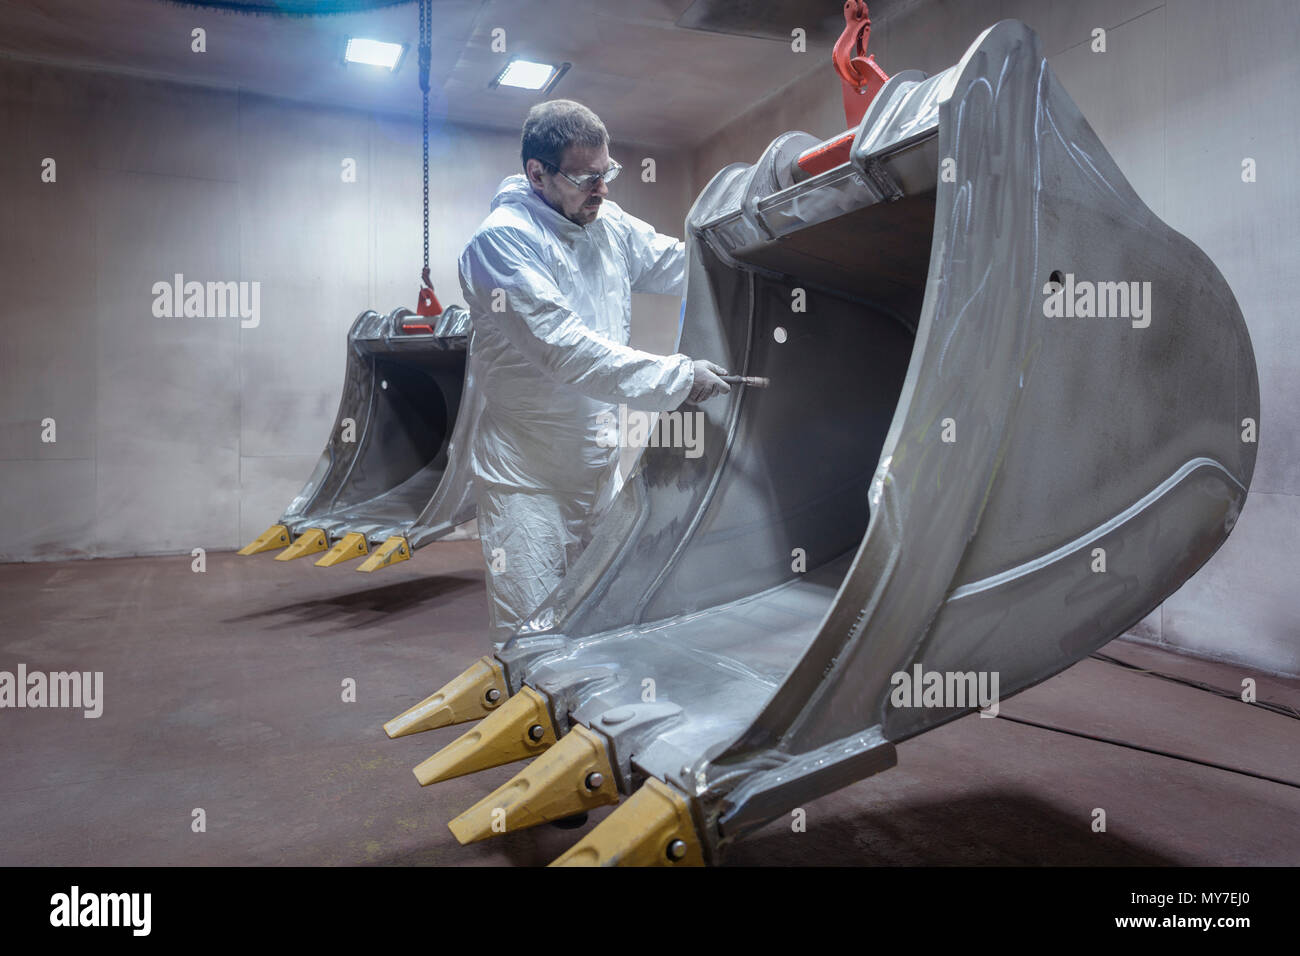 Spray painter cleaning digger bucket in spray booth in engineering factory - Stock Image